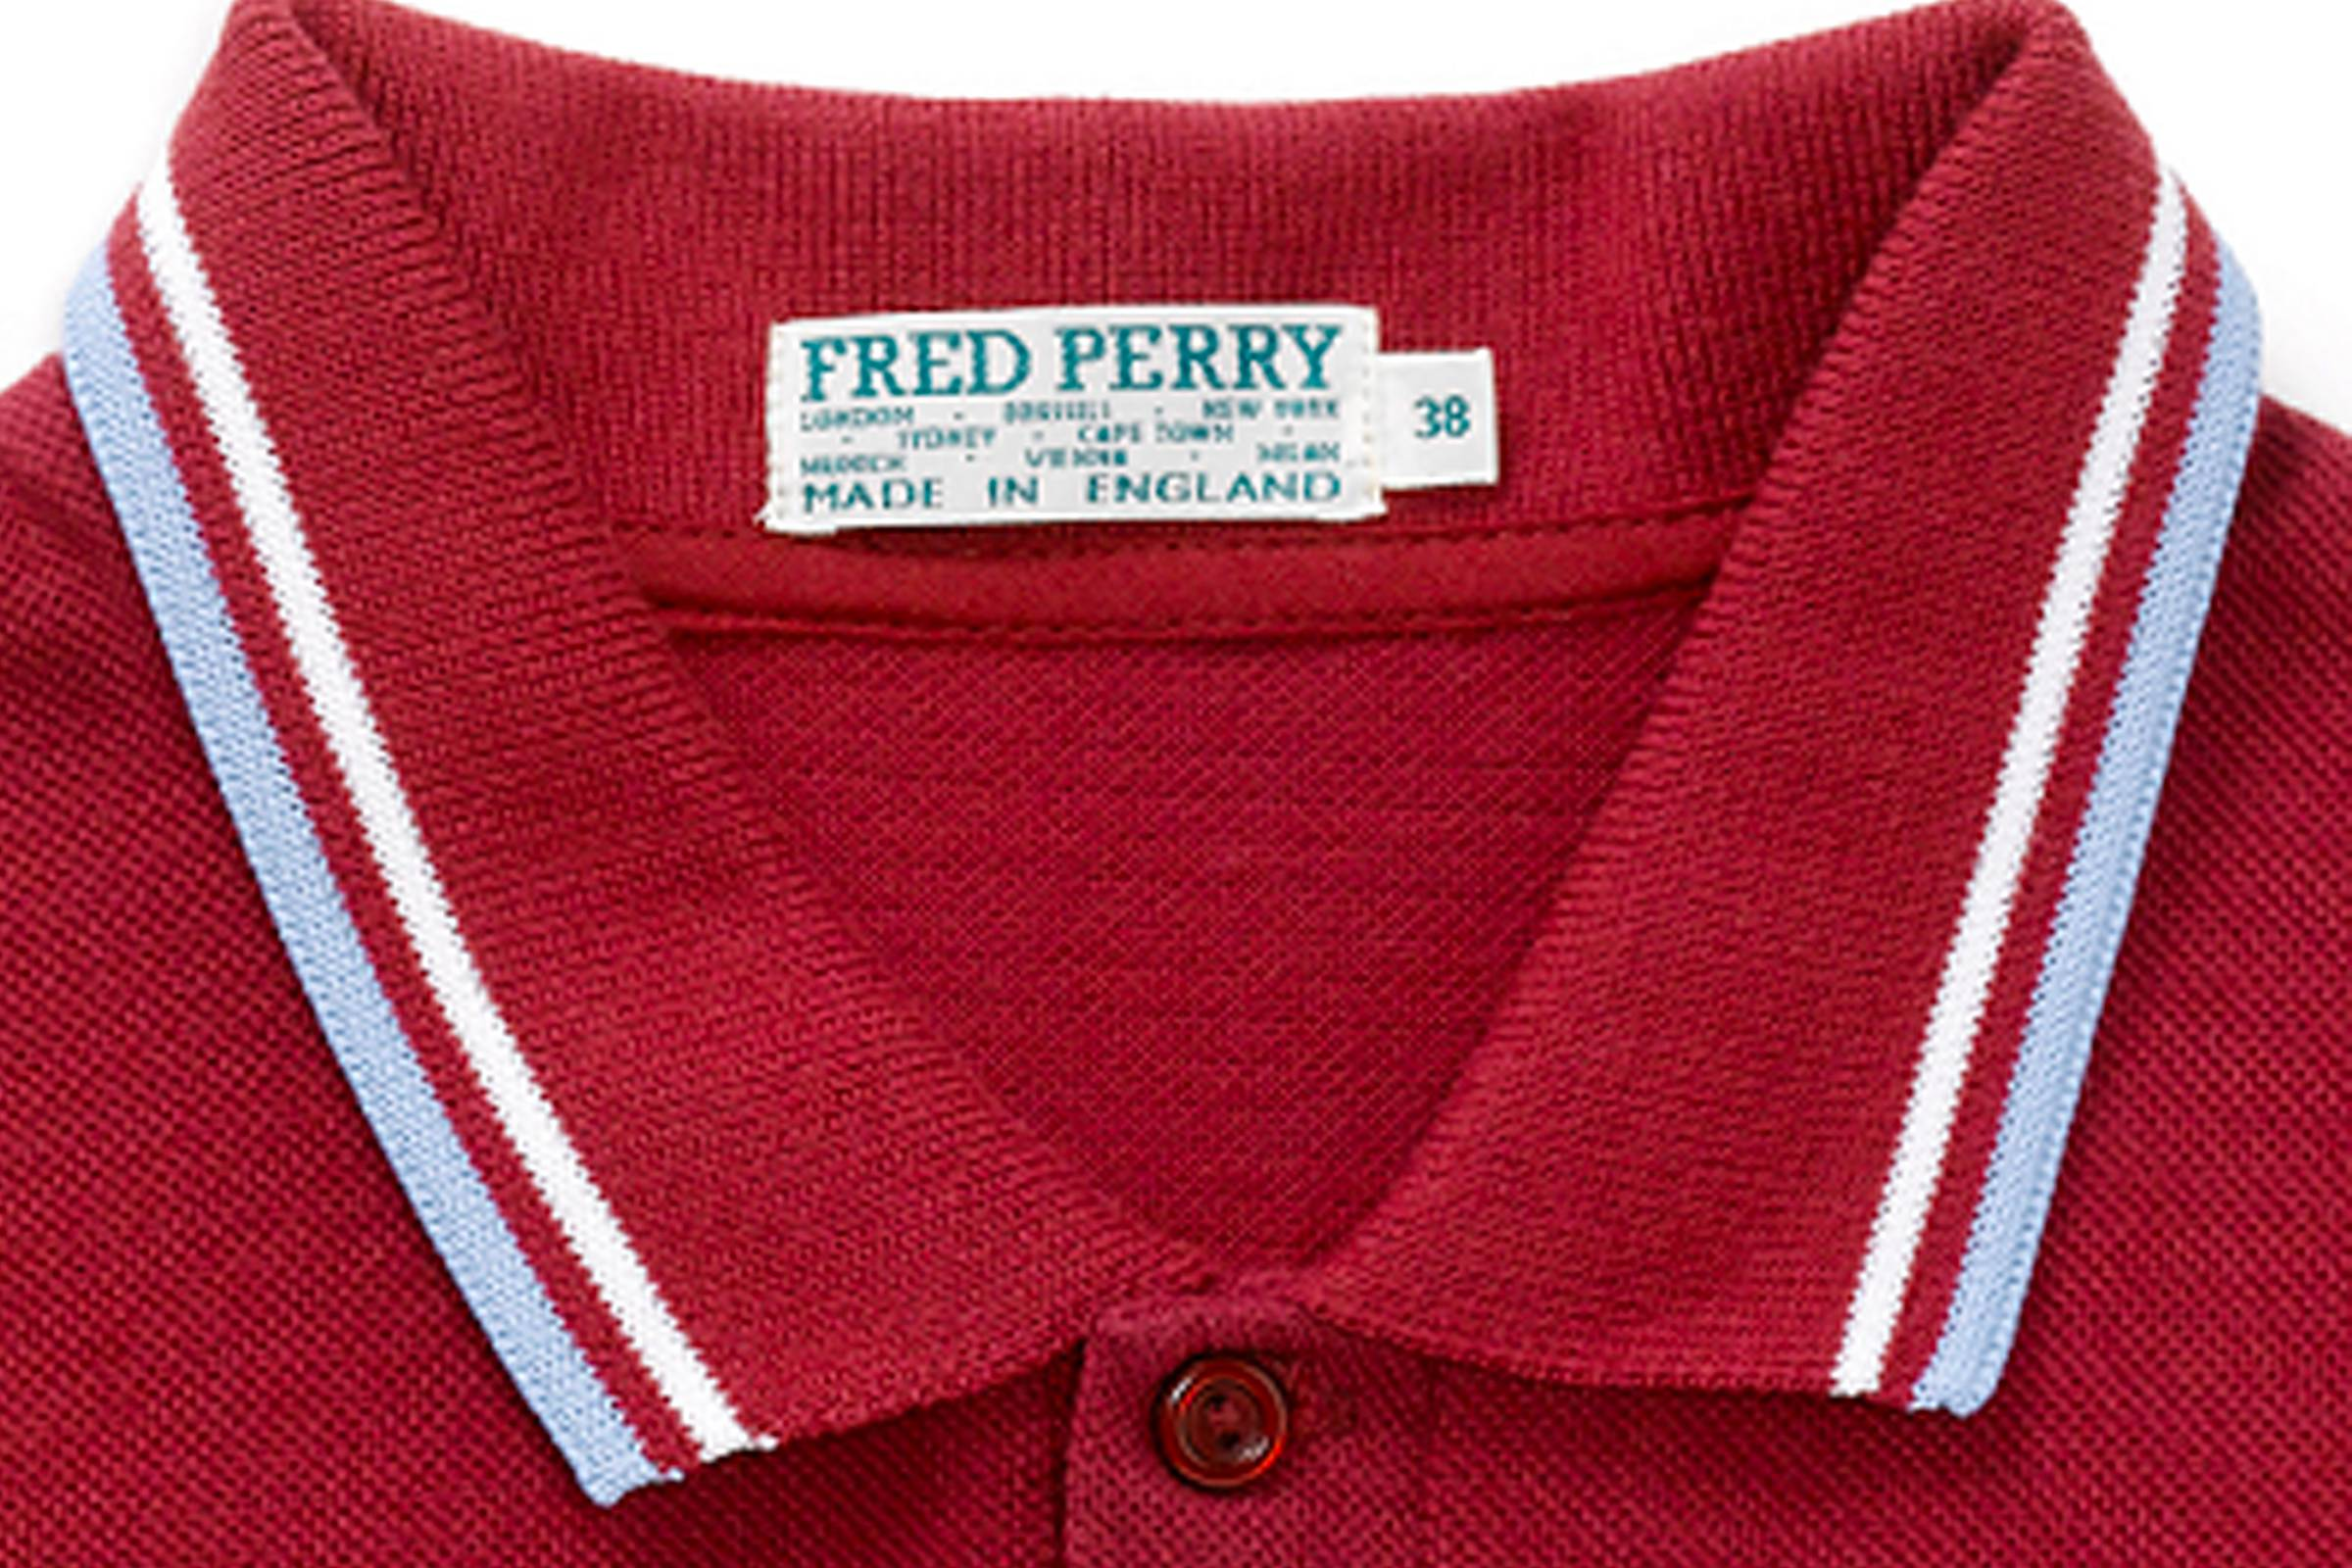 A Fred Perry polo in West Ham's colors of claret and blue